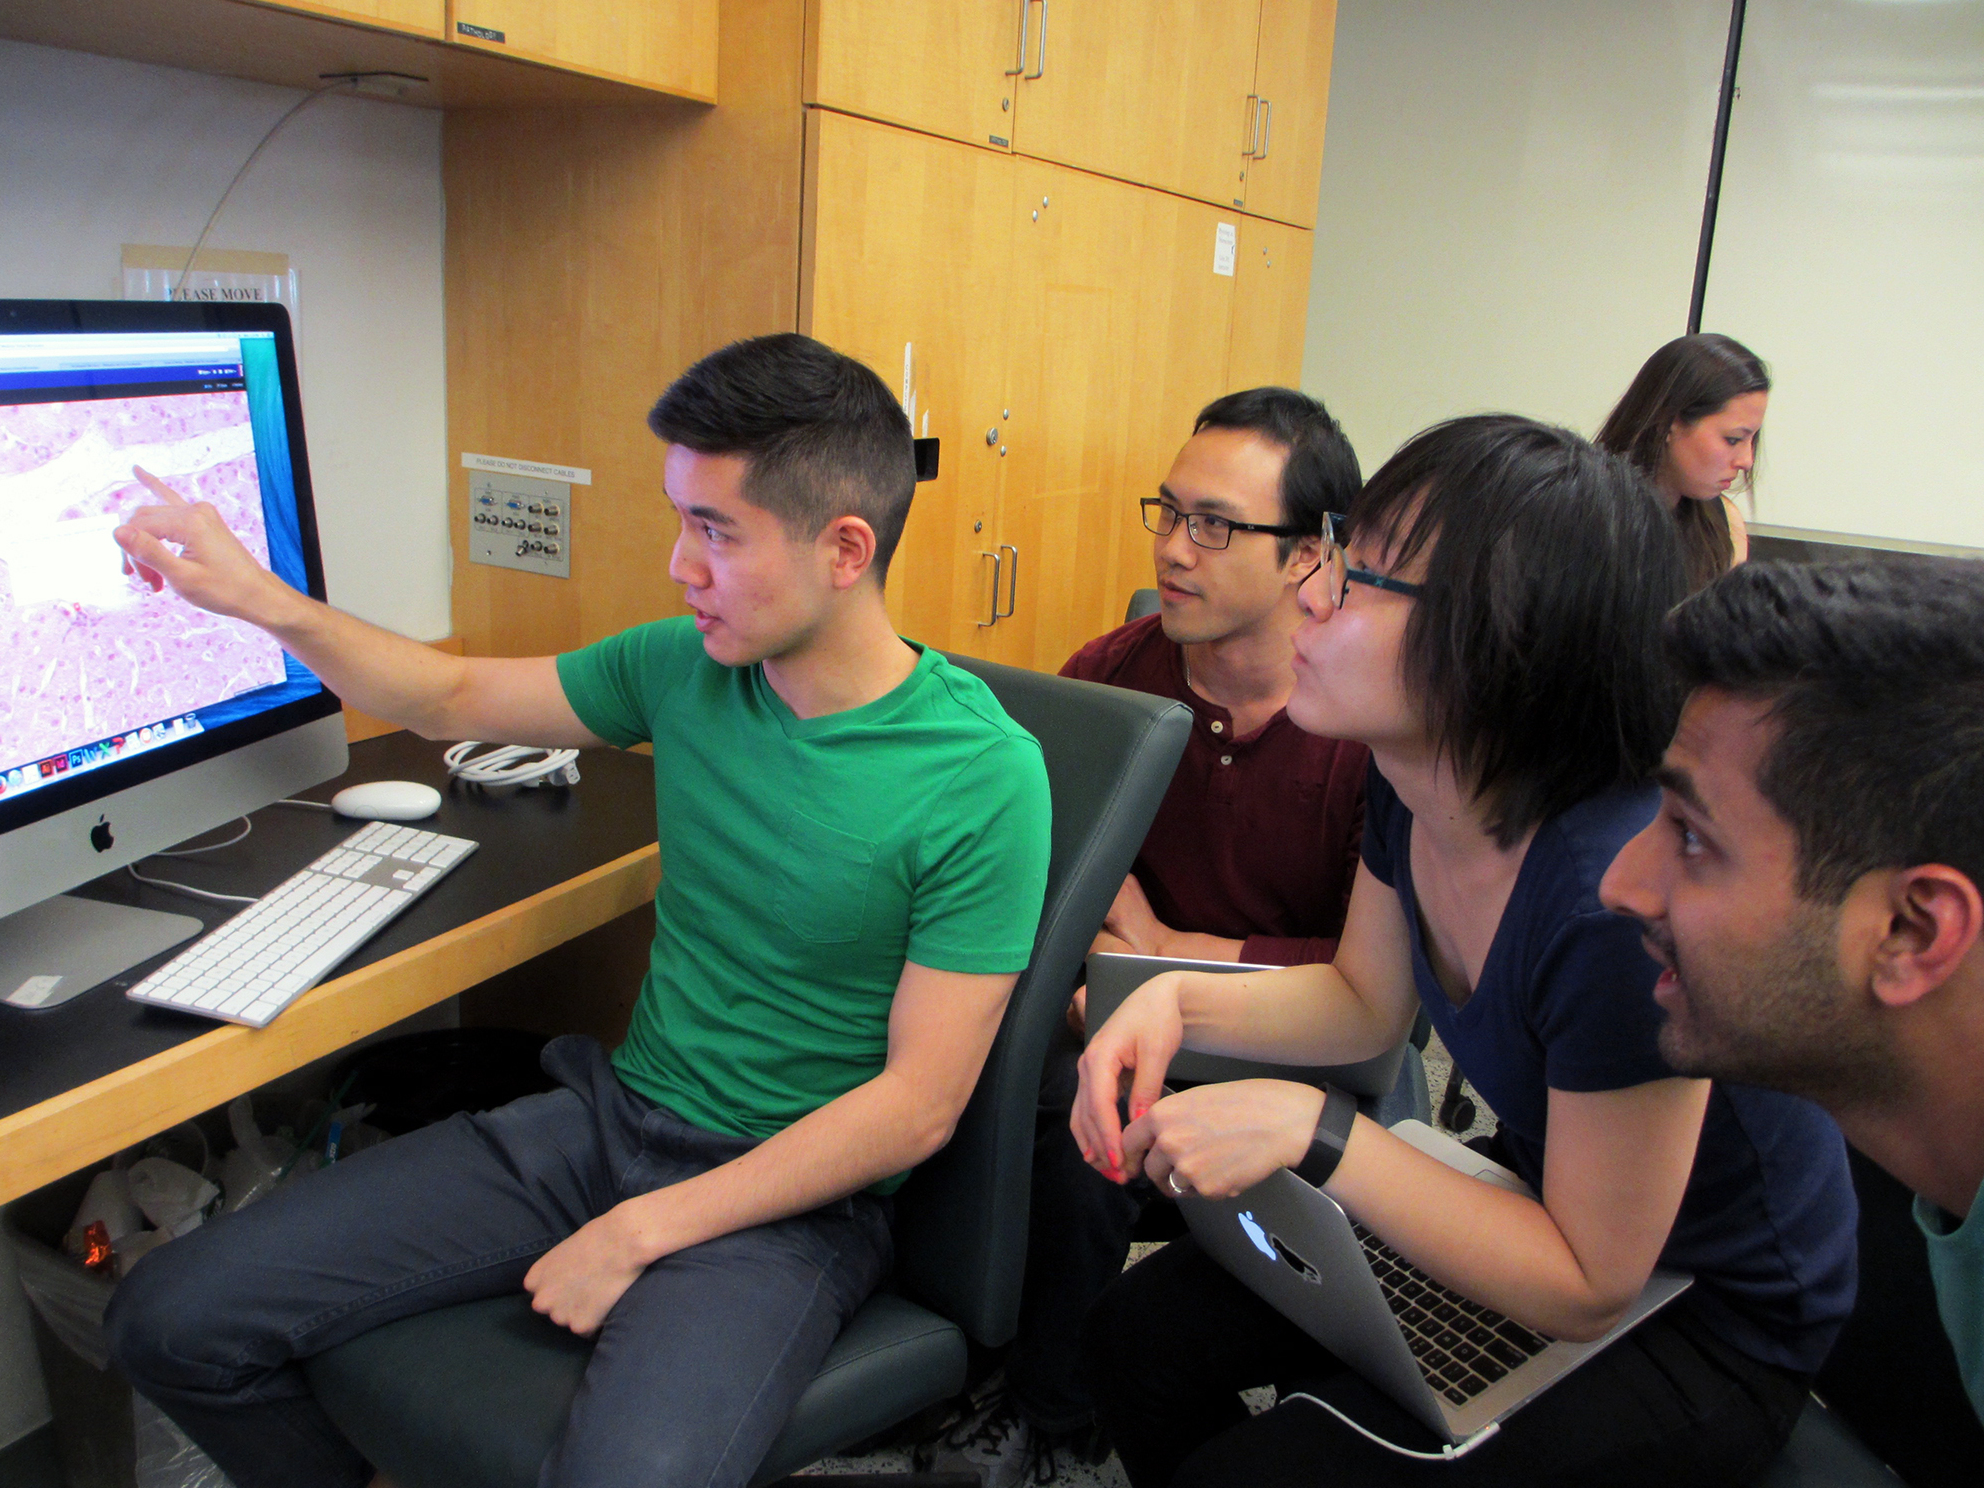 Medical Students Crunch Big Data To Spot Health Trends